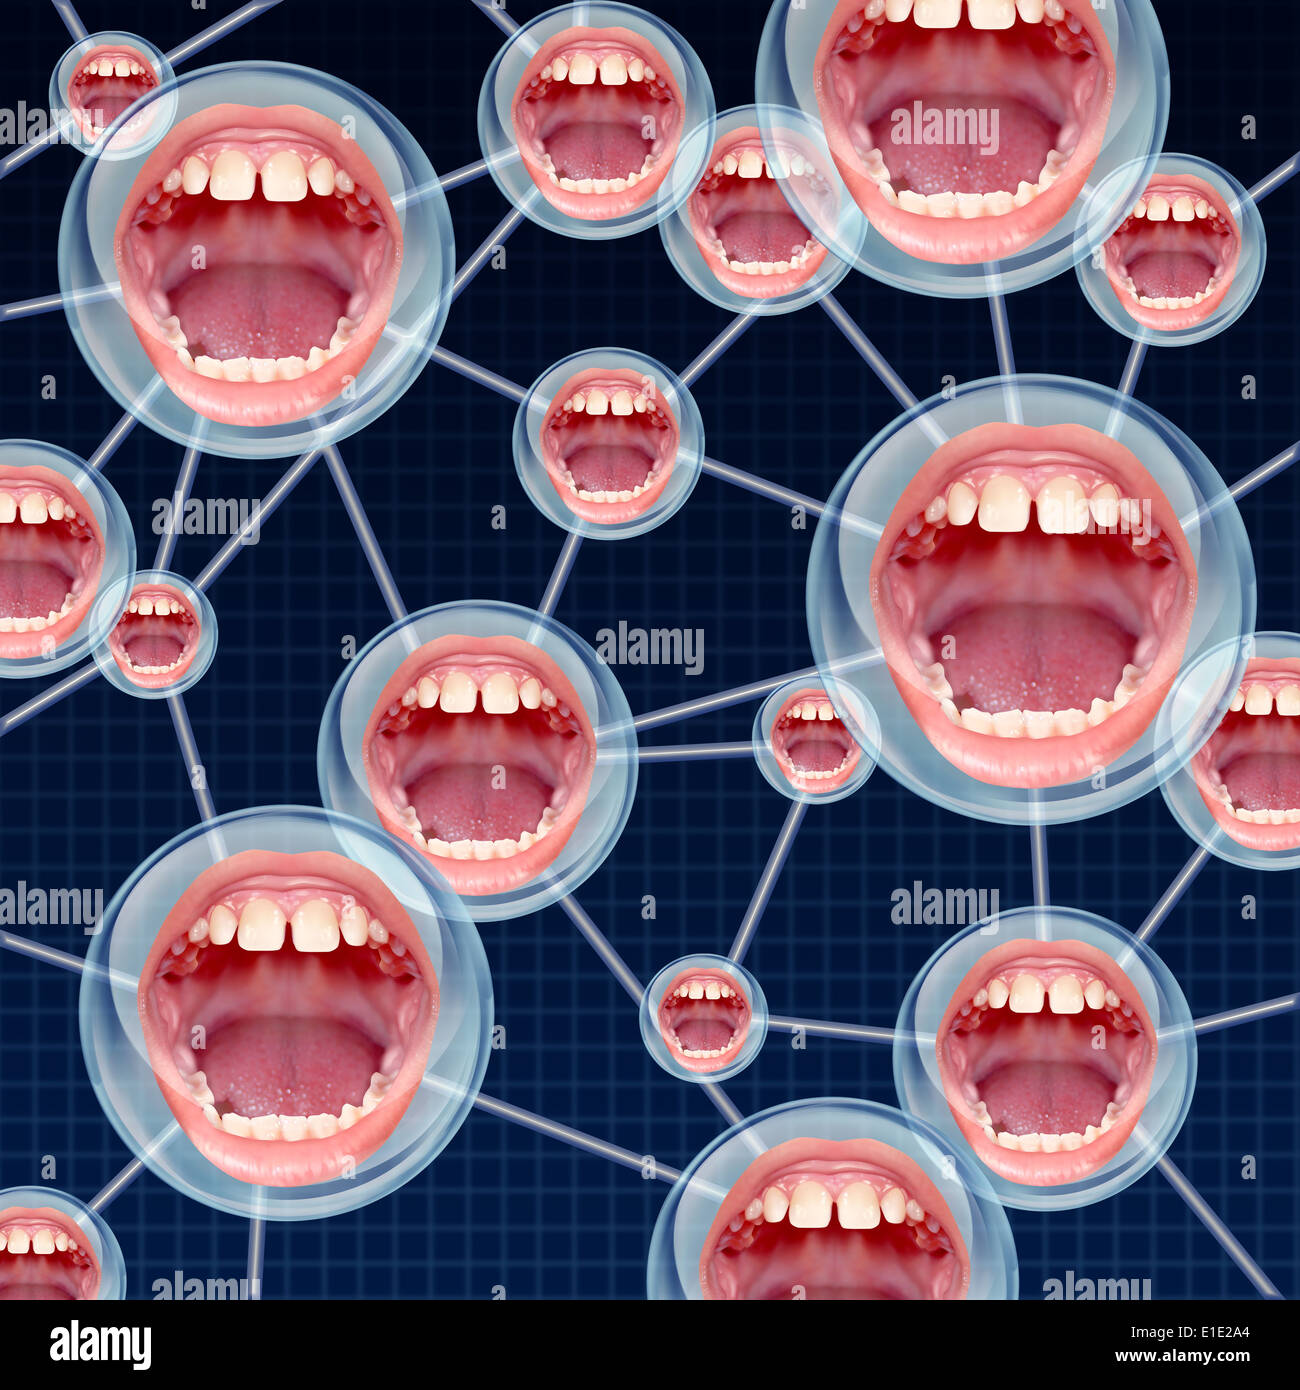 Social Connections communication concept as a group network on the internet with connected bubbles as human mouths inside as a symbol of talking and sharing information. - Stock Image